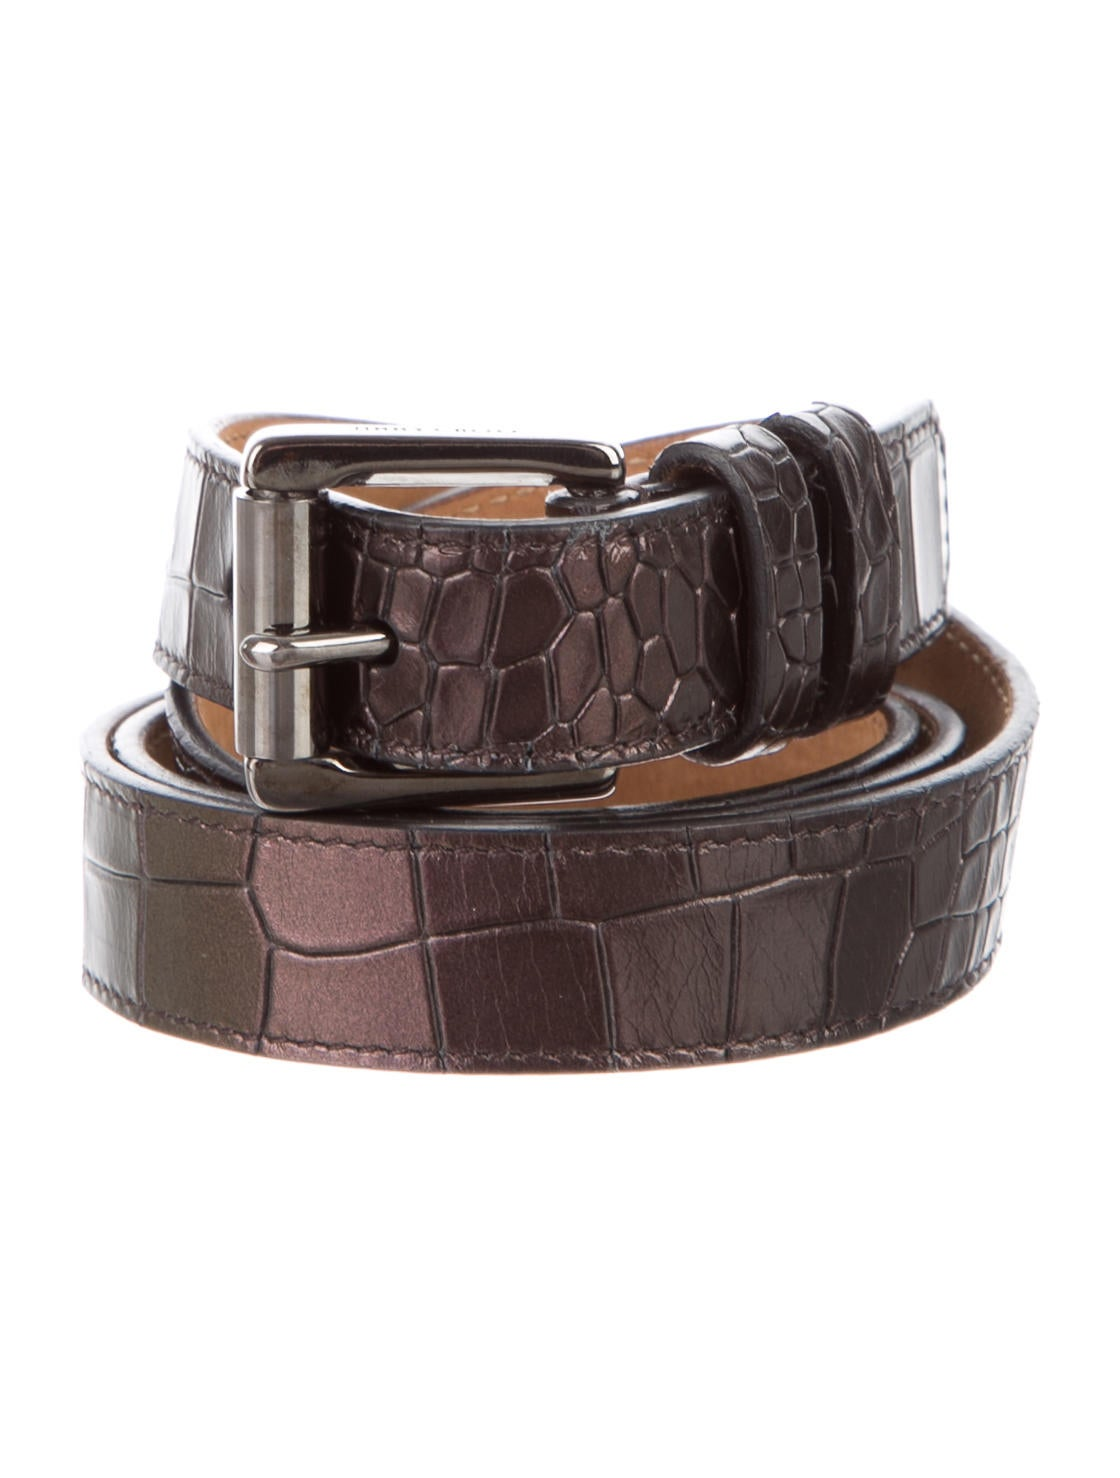 jimmy choo embossed metallic leather belt accessories